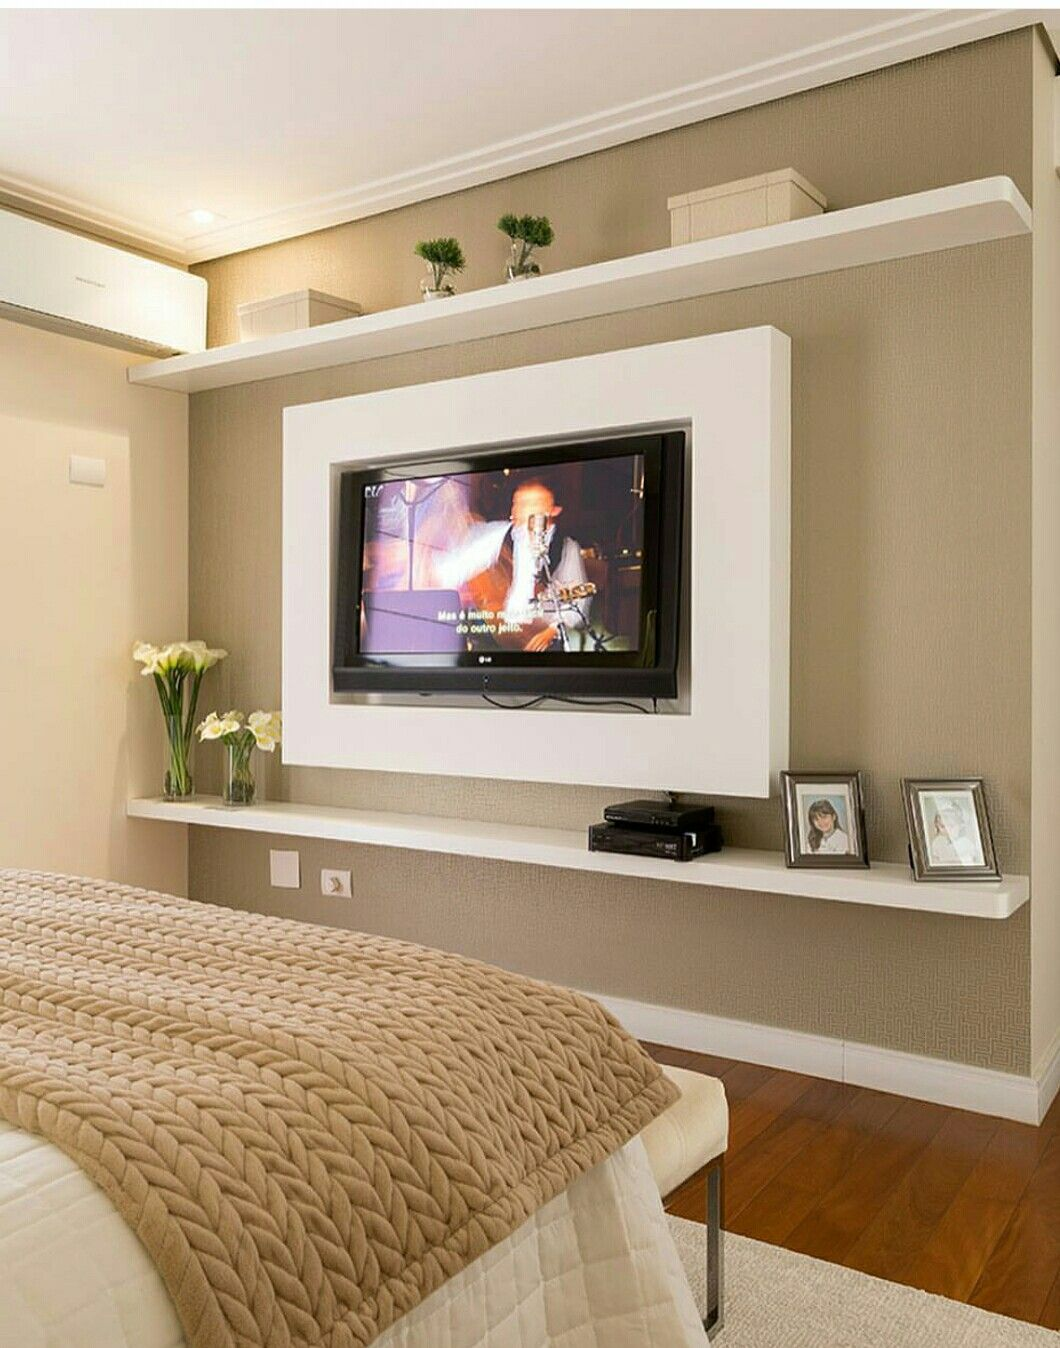 Muebles Para Tv En Habitaciones Pin By Bongi Sithole On Décor Ideas Pinterest Recamara